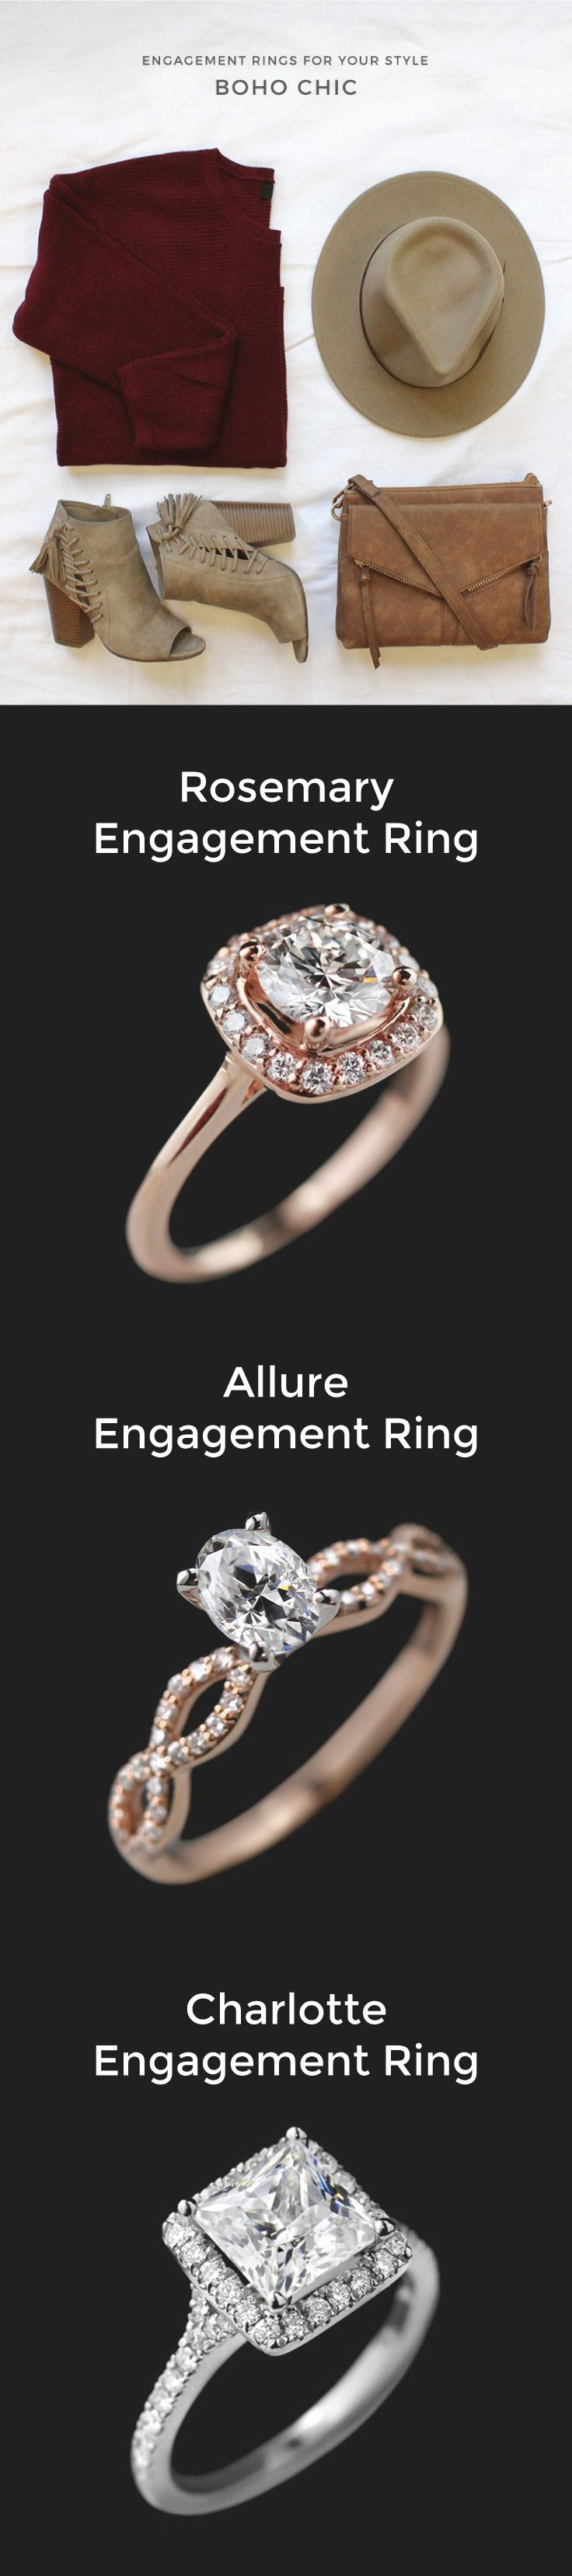 yes category girls page gottlieb open rings miadonna stephanie thering ring band double part the engagement